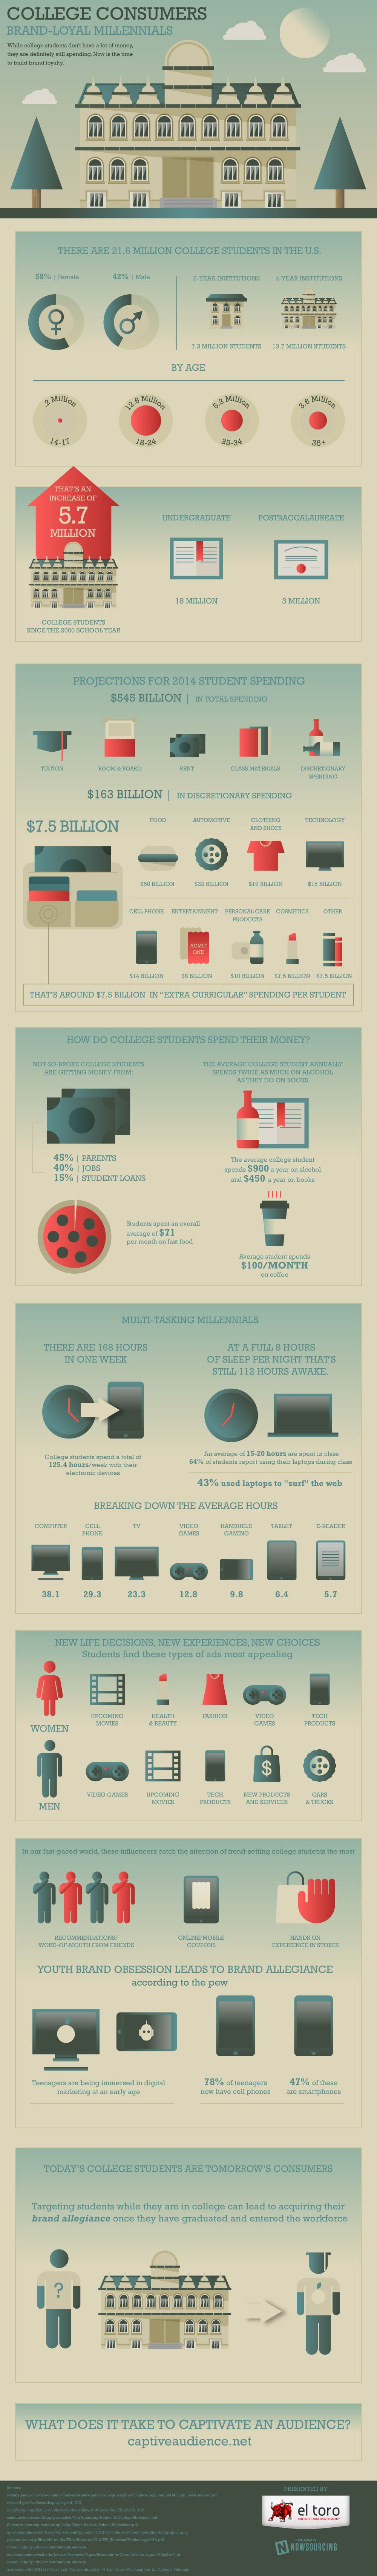 Why Marketing to College Millennials Pays Off (Infographic)